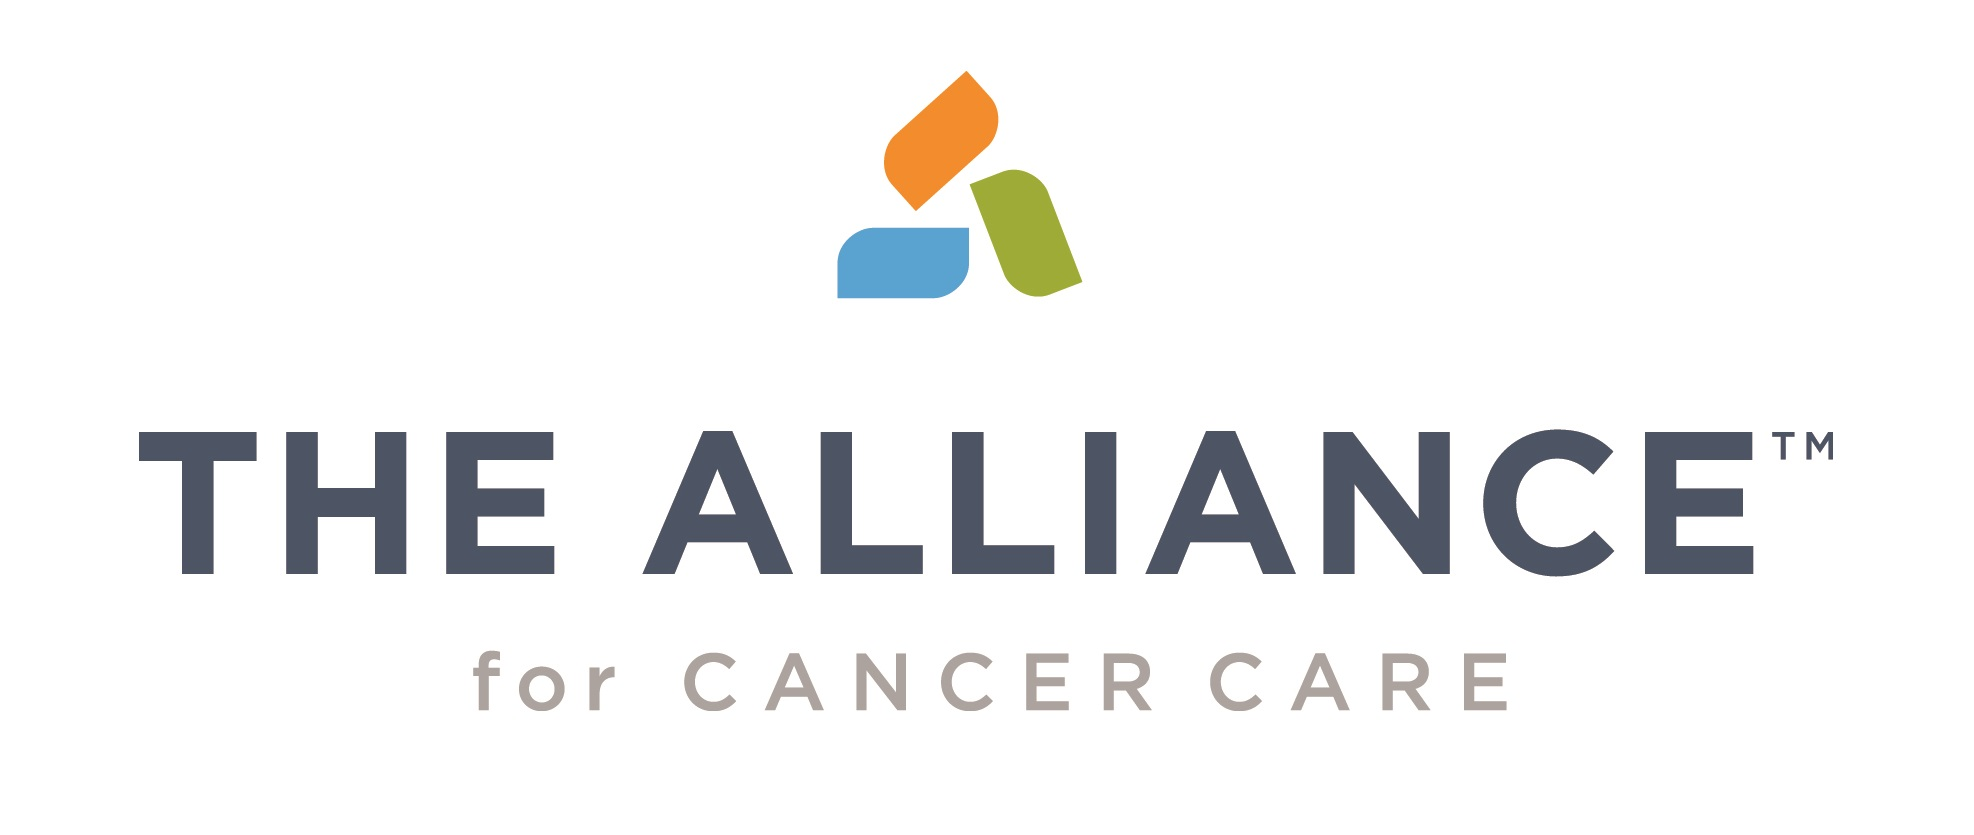 InnerPacific Alliance for Cancer Care brings the combined strength of Cancer Care Northwest, Kootenai Health and Providence Health Care (Sacred Heart Medical Center & Children's Hospital and Holy Family Hospital) to your cancer care team.